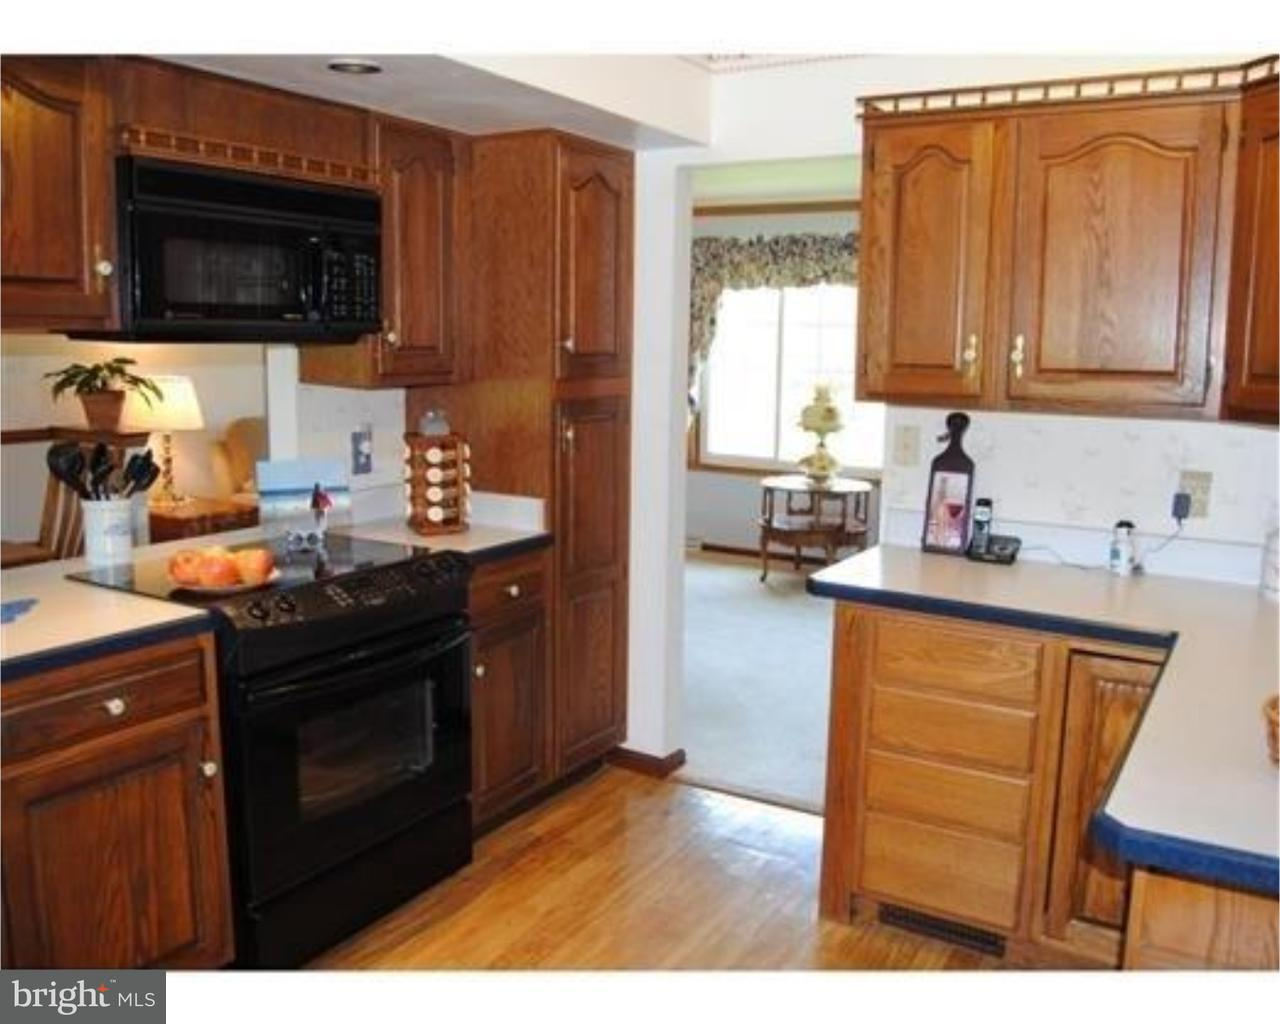 1405 STATE RD, COOPERSBURG - Listed at $509,900, COOPERSBURG